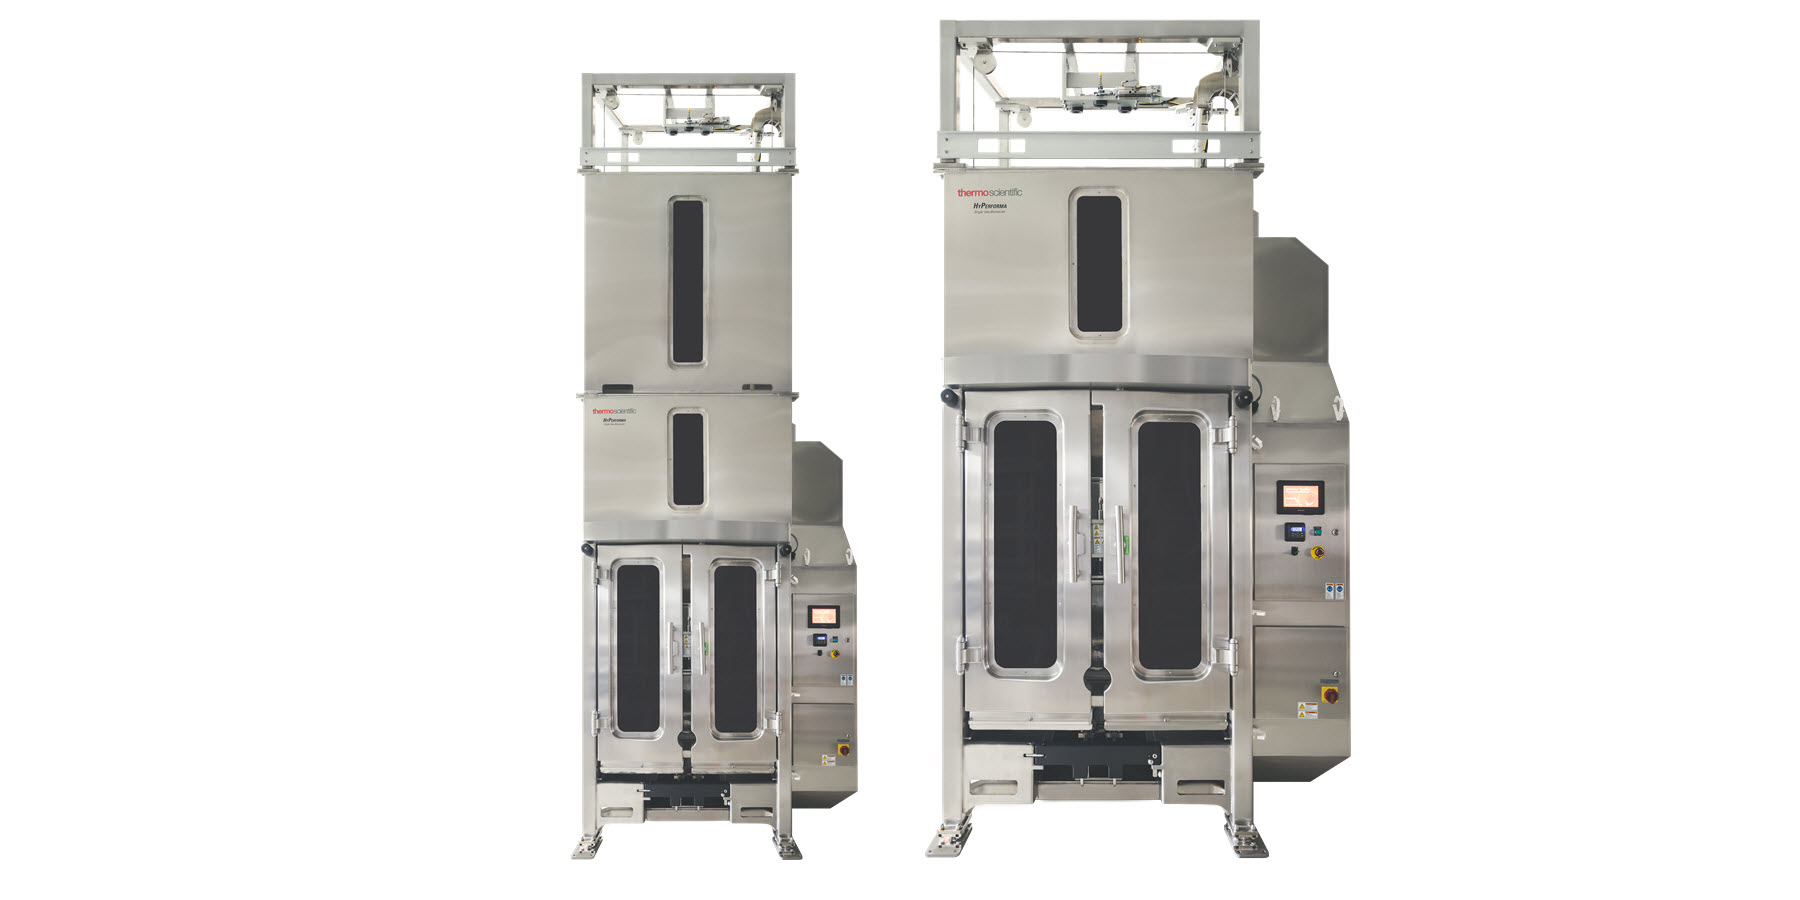 Thermo Fisher Scientific Launches 3,000 L and 5,000 L HyPerforma DynaDrive Single-Use Bioreactors (S.U.B.s) for Cell Culture Production